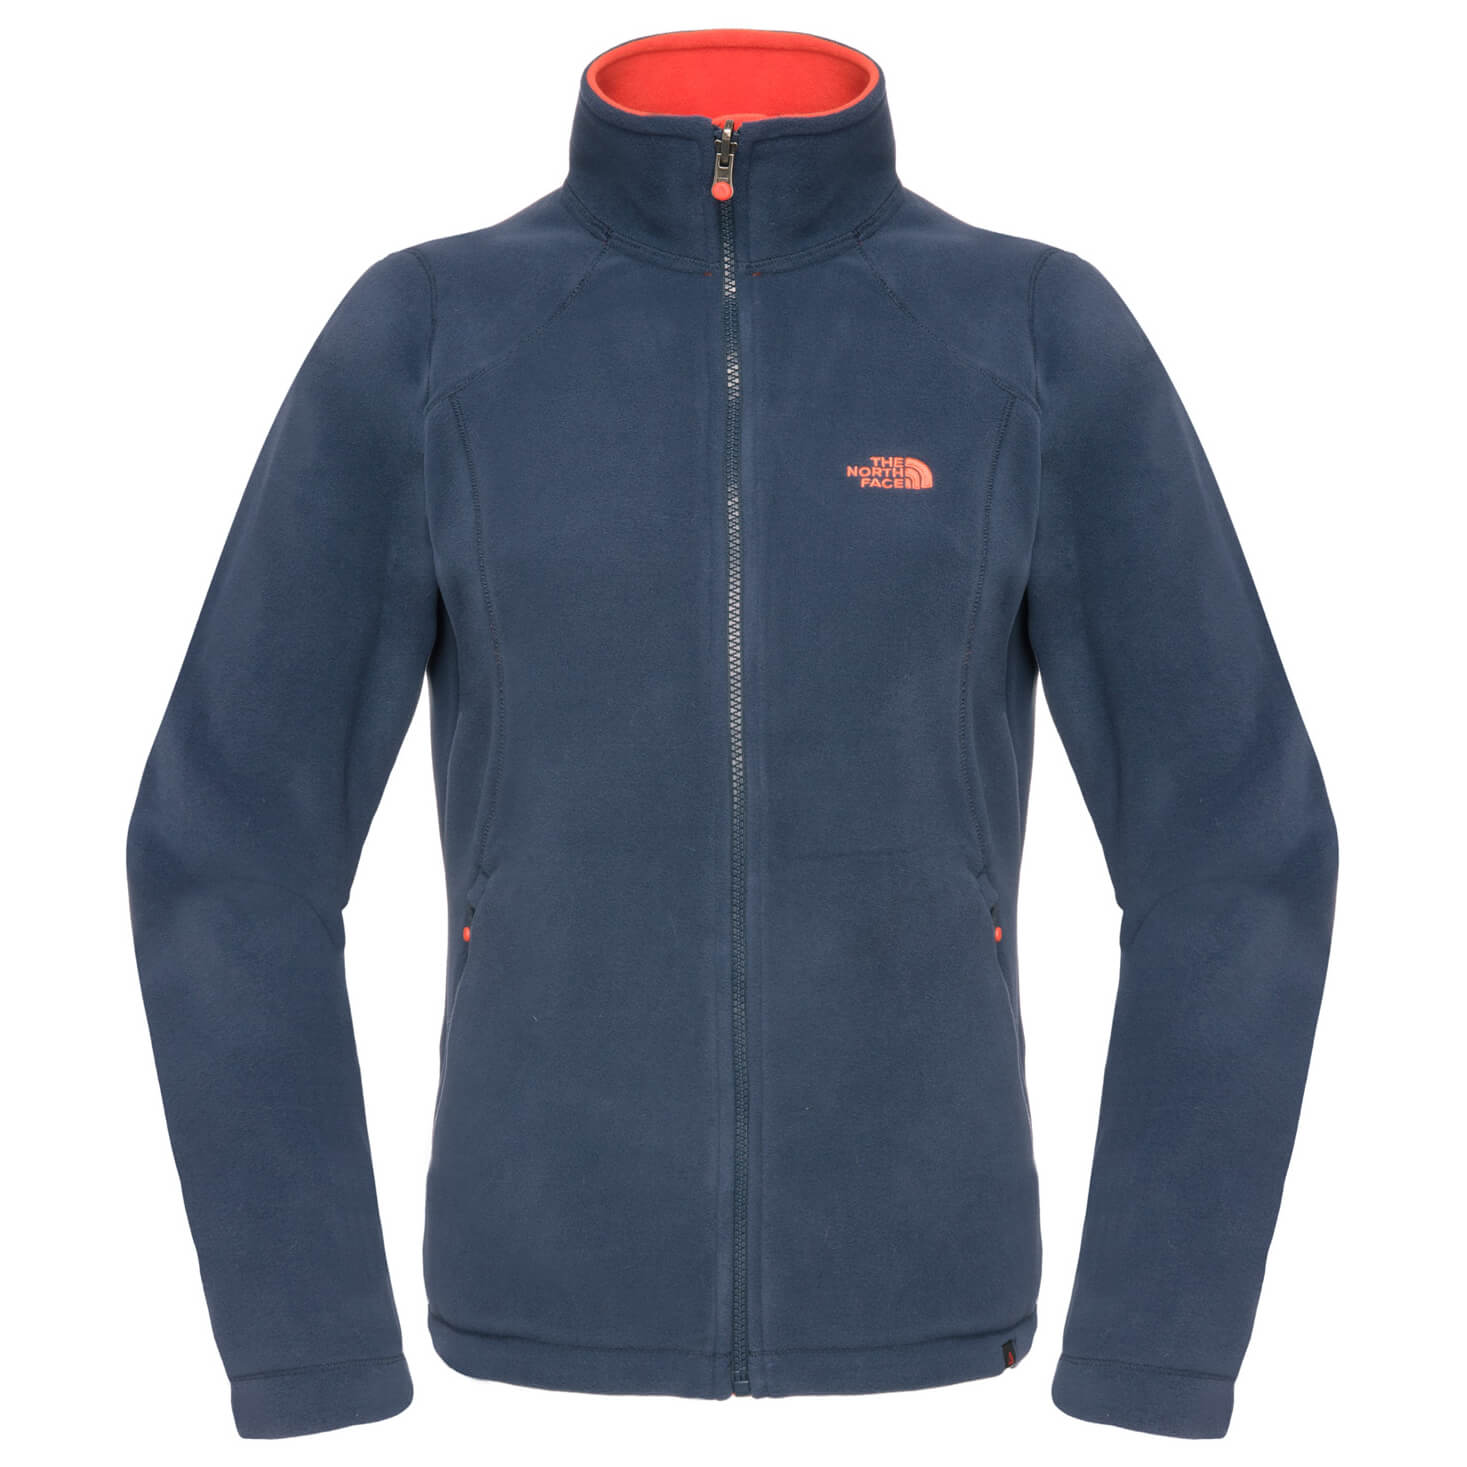 The North Face Damen 100 Glacier Full Zip Jacke kaufen